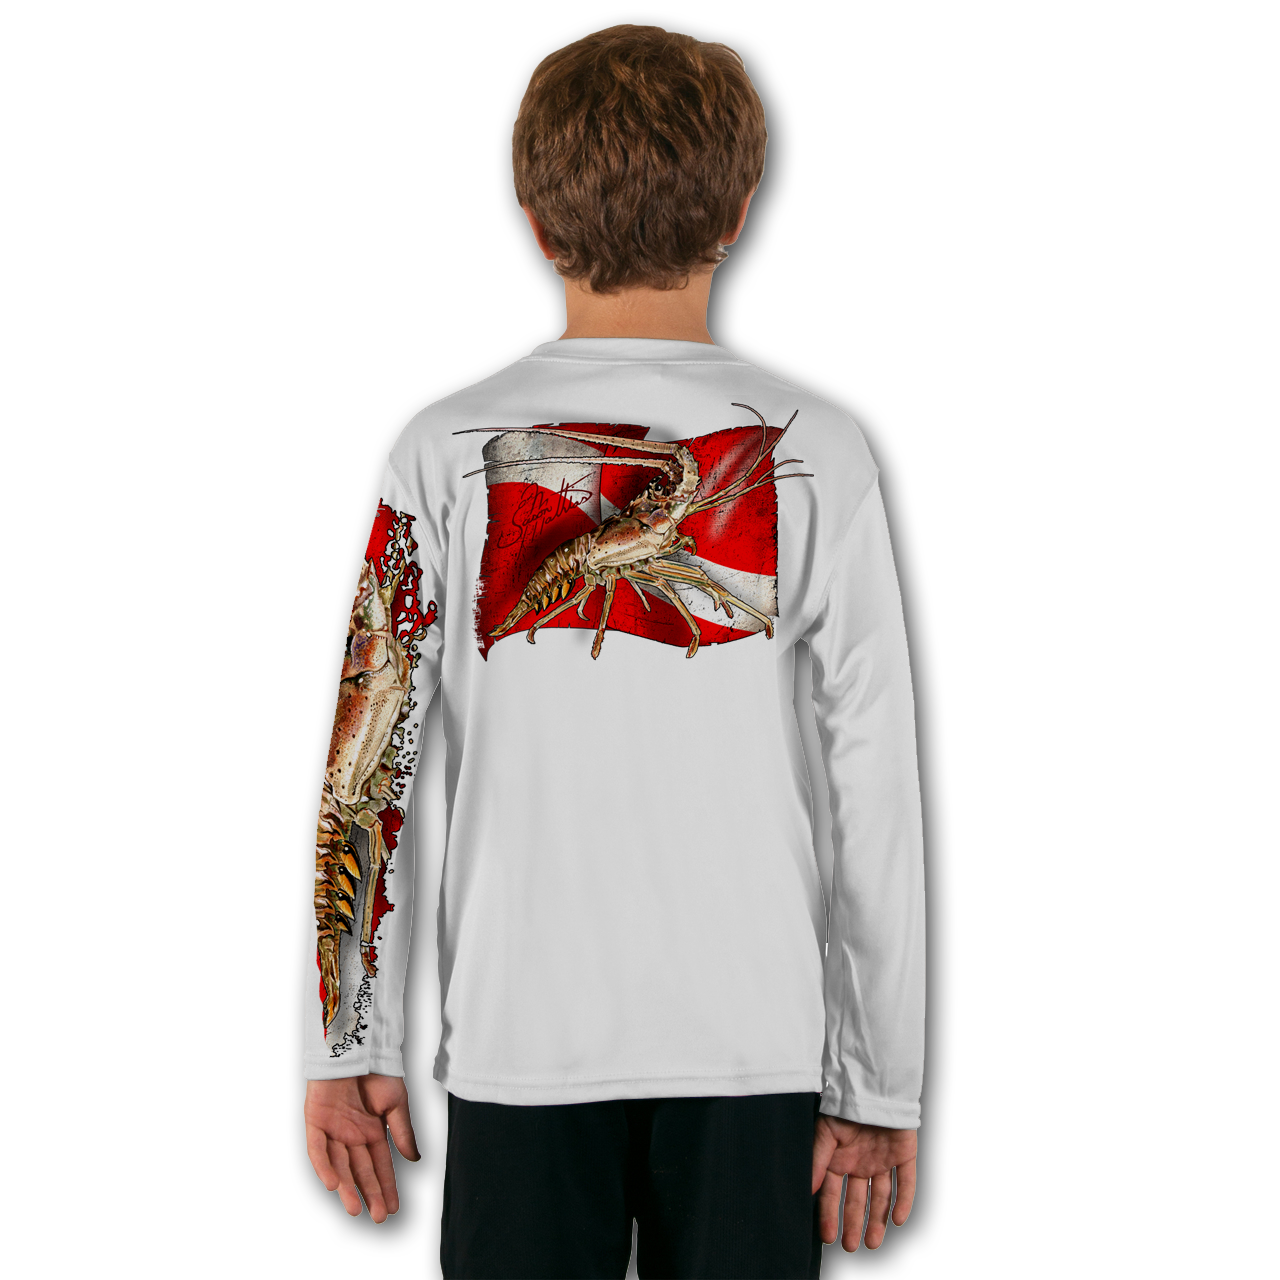 lobster-dive-white-youth-solar-ls-back-performance-shirt.png